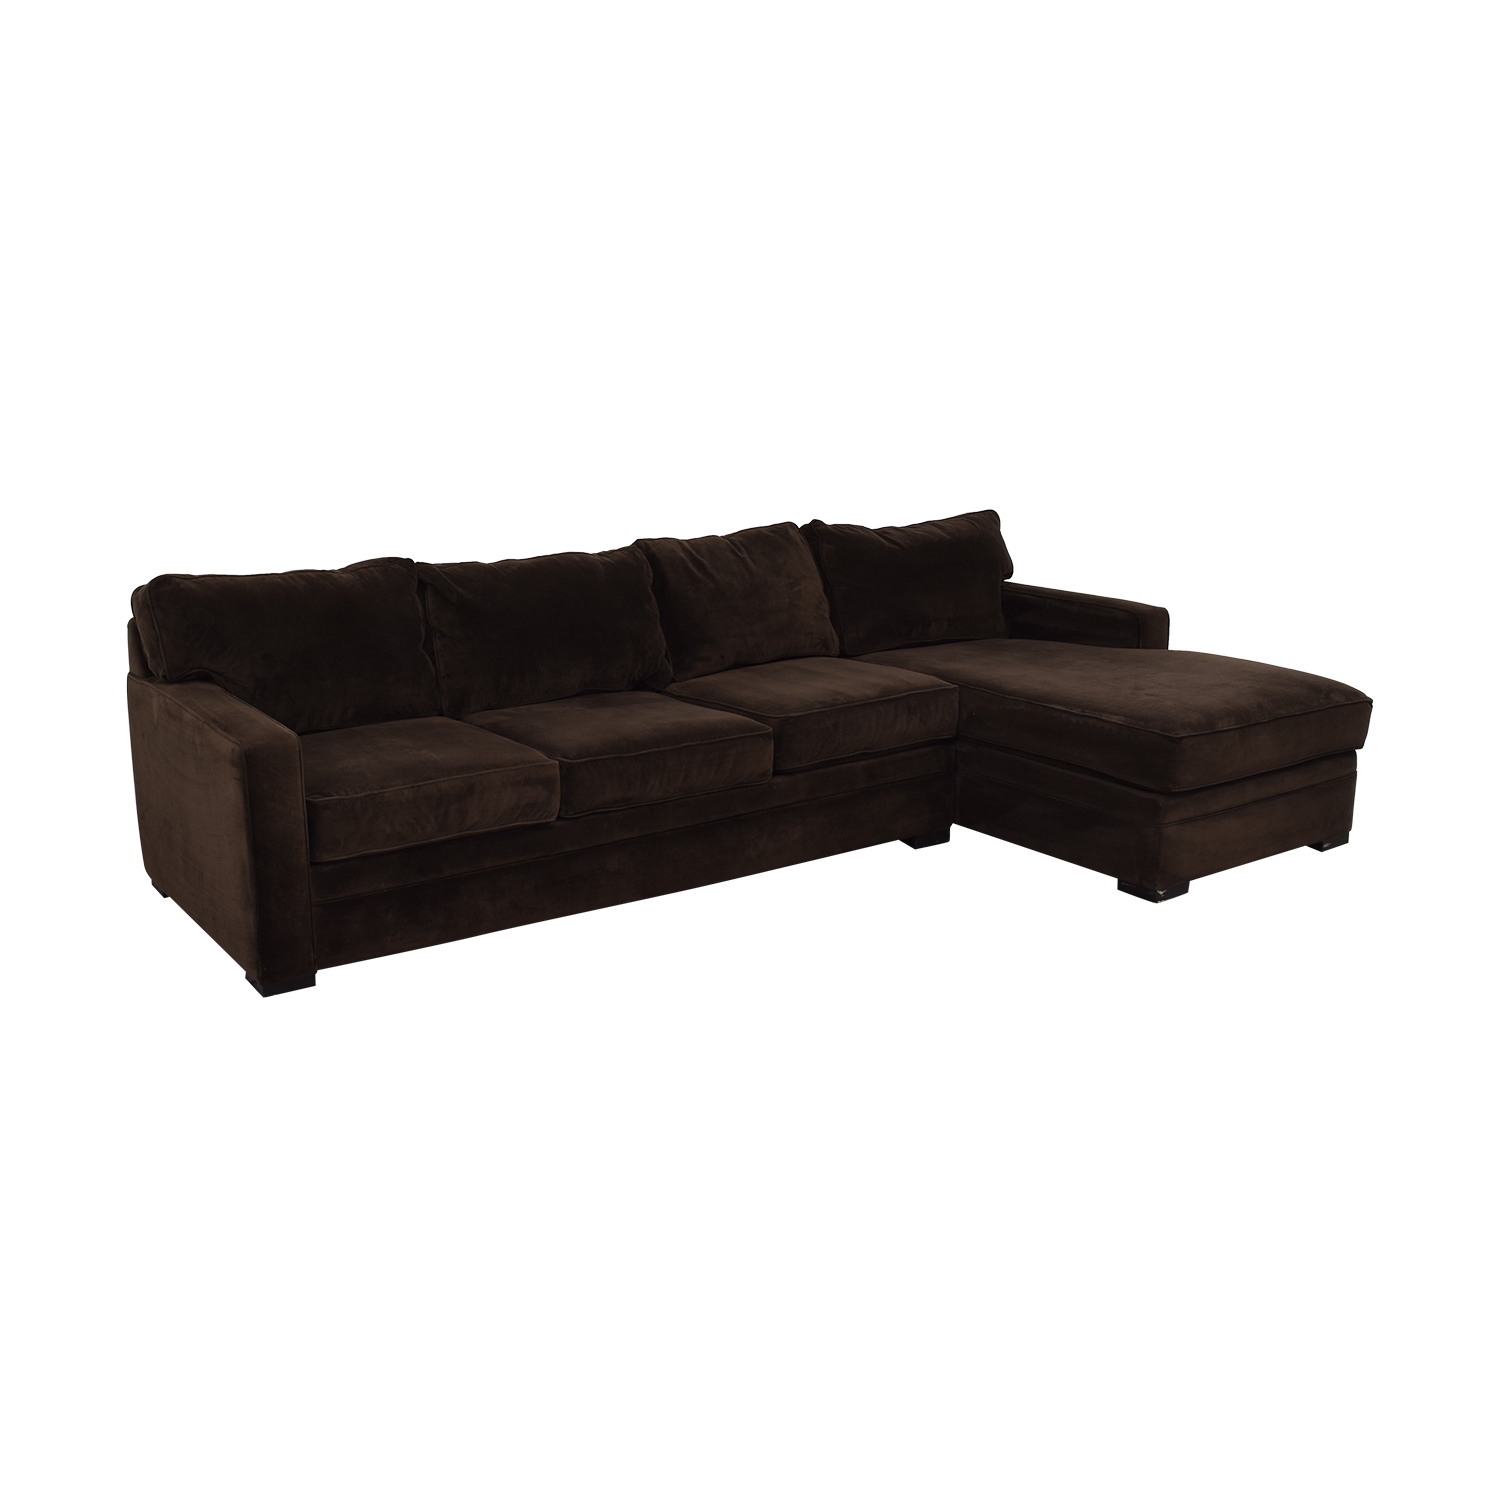 Star Furniture Star Furniture Juno Raf Sectional Sofa with Chaise on sale